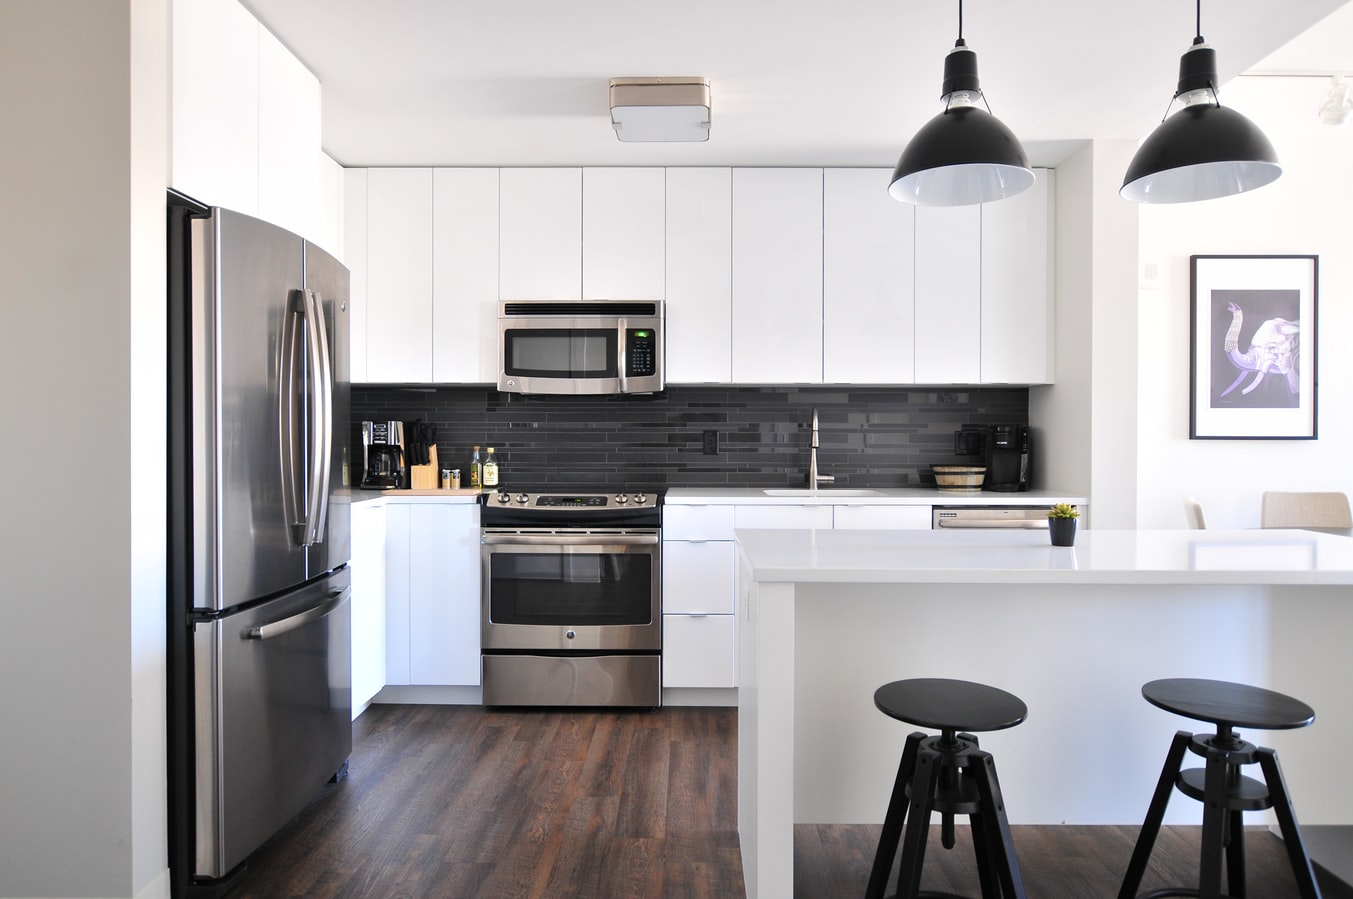 5 Steps to Get Your House Rental-Ready